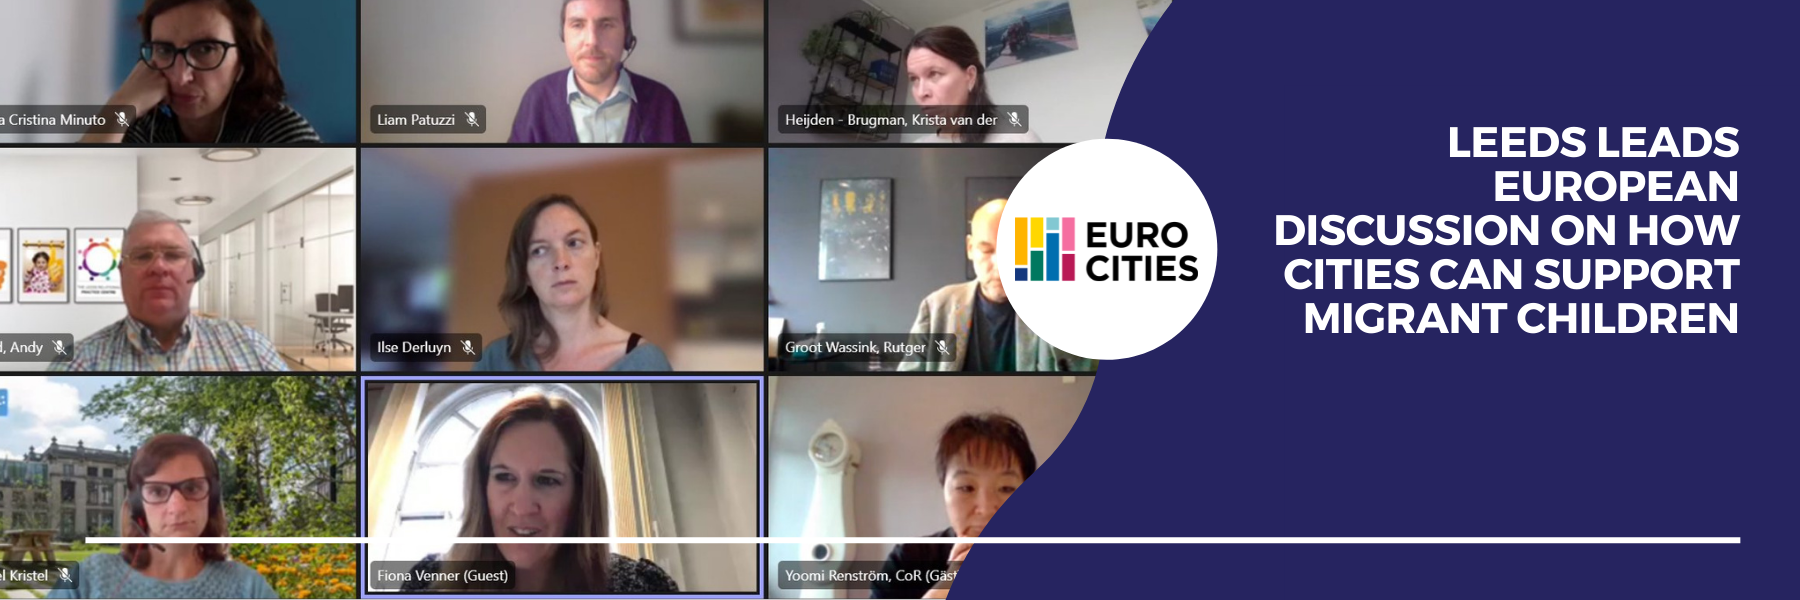 Leeds leads European discussion on how cities can support migrant children